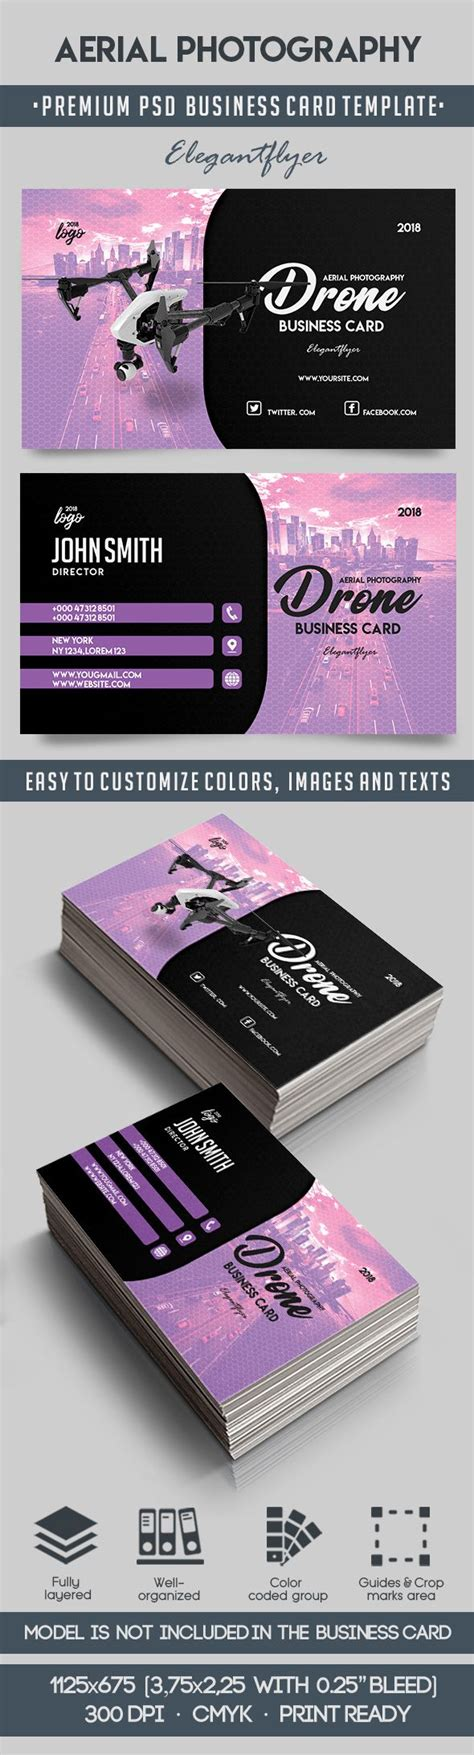 Aerial Photography Business Card Template By Elegantflyer Aerial Photography Website Templates